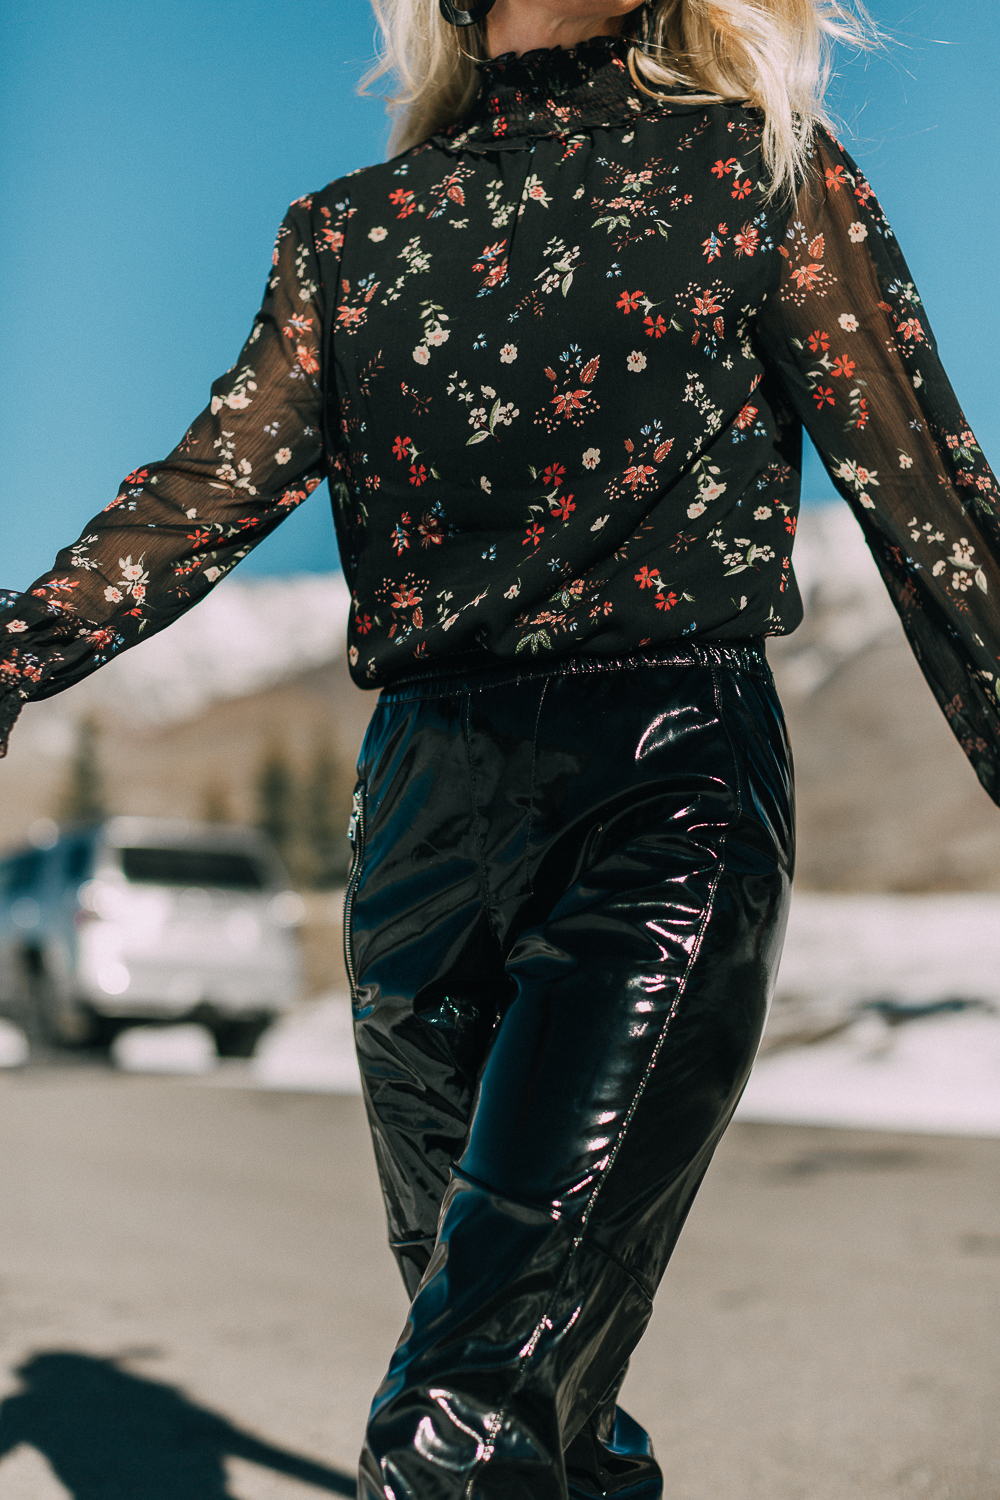 Dark floral blouse by Sanctuary tucked into black vinyl pants by RtA worn by fashion blogger Erin Busbee of BusbeeStyle.com